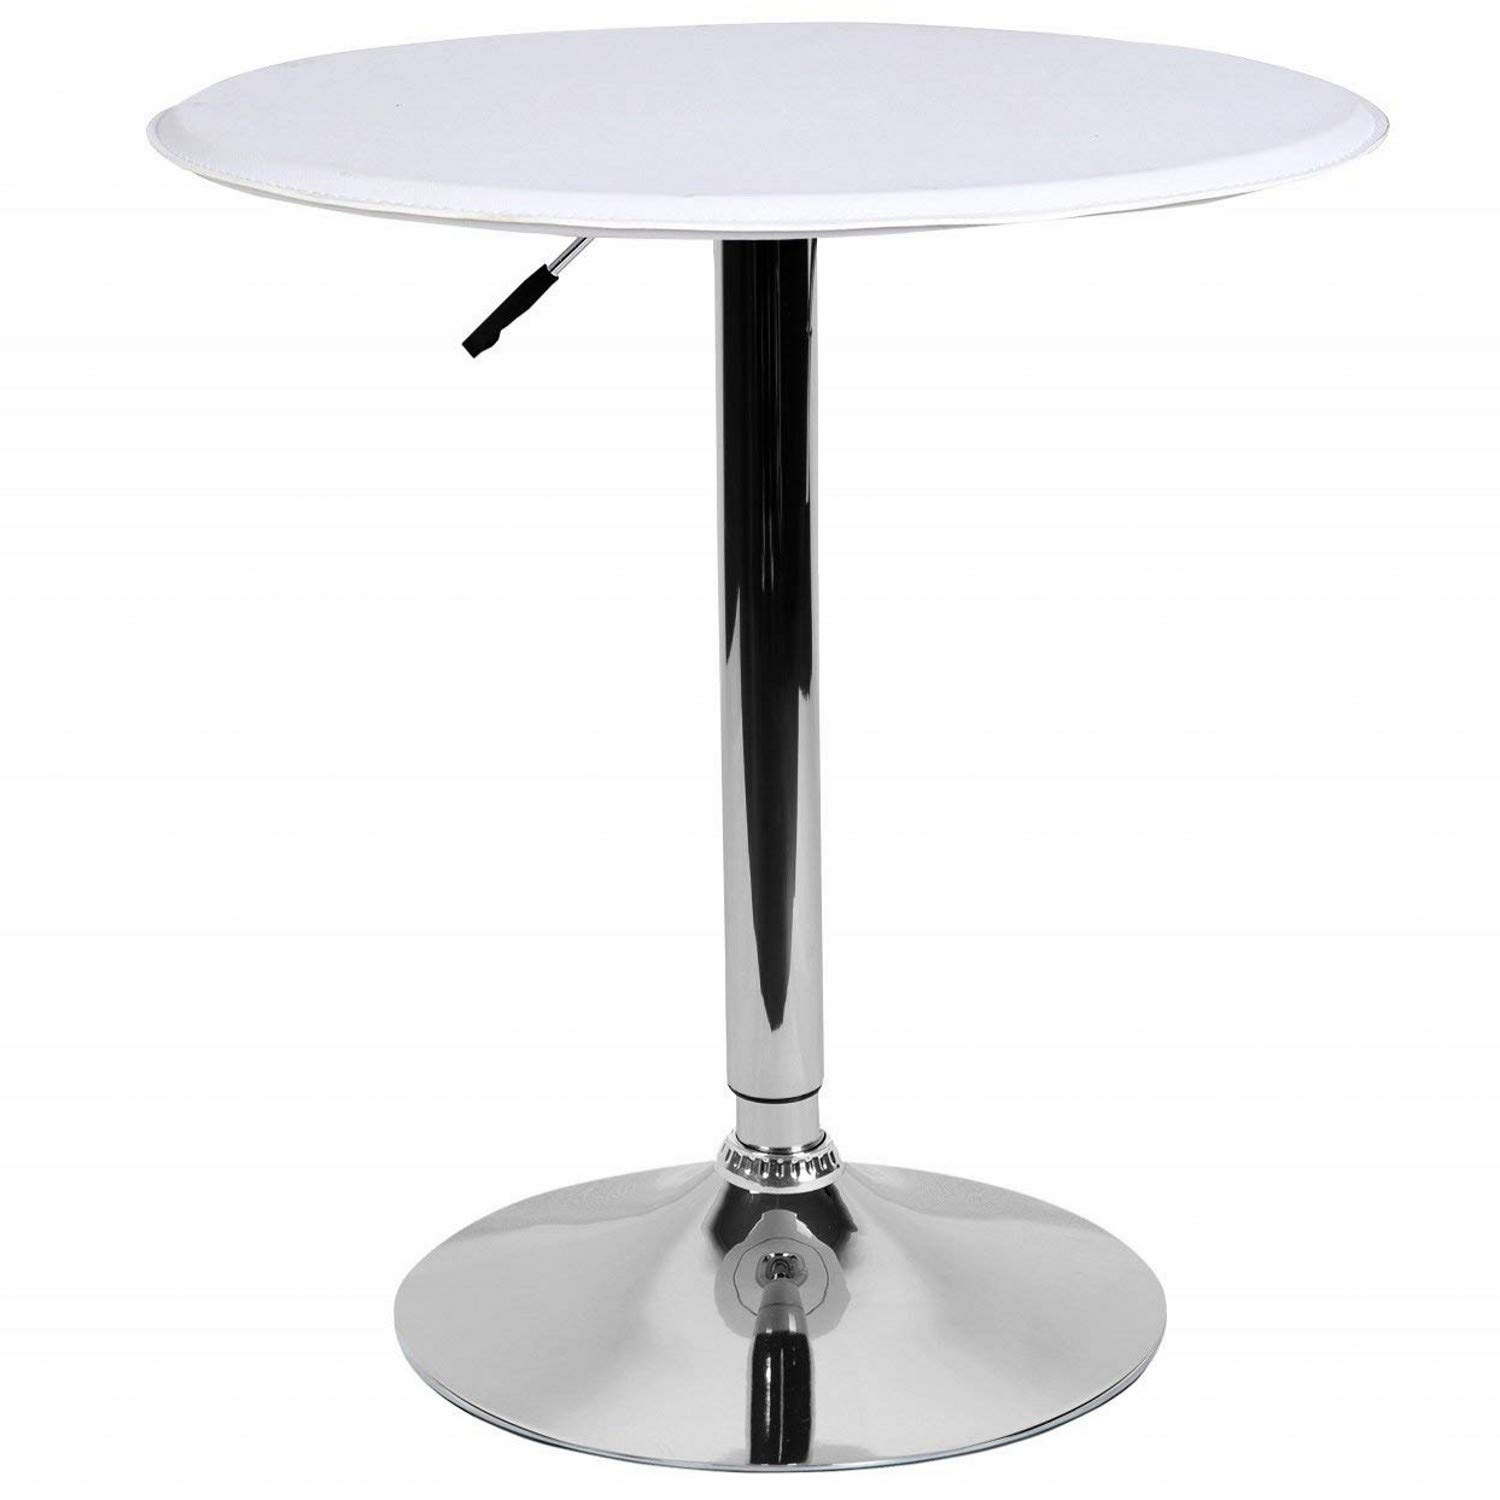 LCH 23.6'' PU Top Adjustable Round Dining Bar Table Kitchen Home Bar Furniture, White